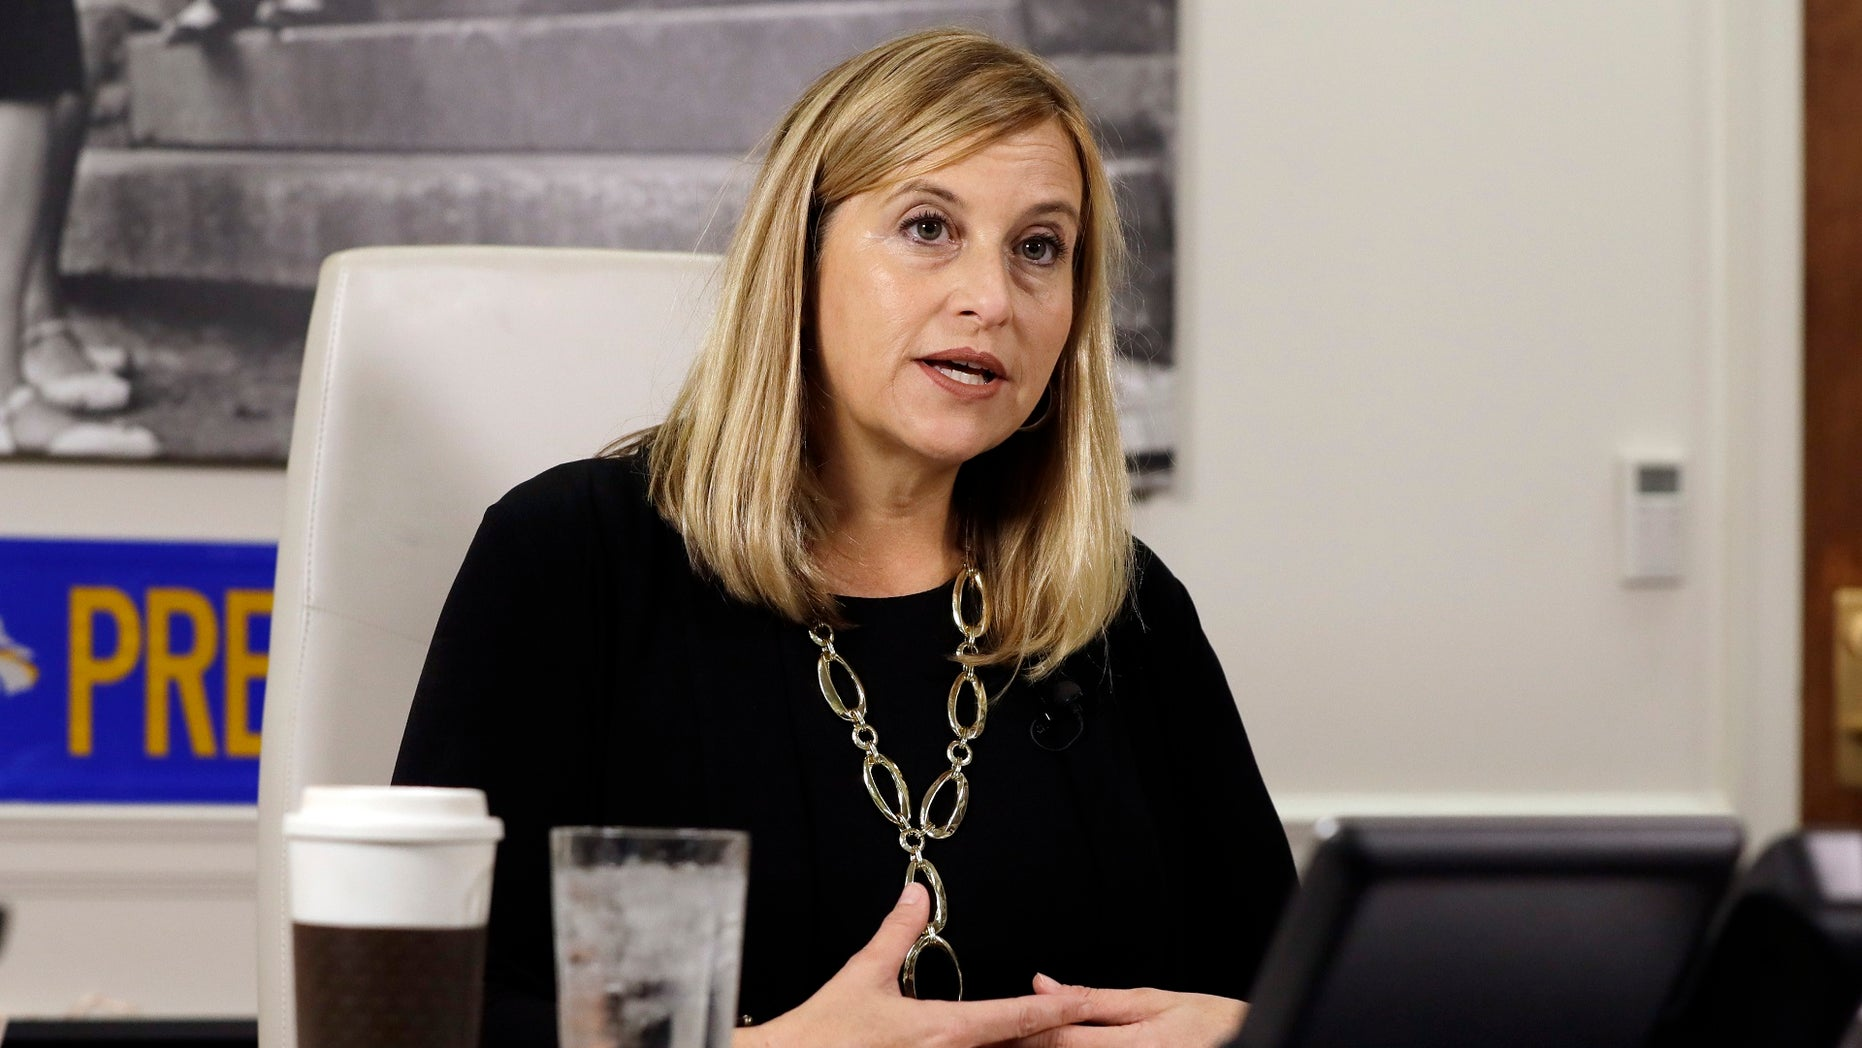 The revelation of Nashville Mayor Megan Barry's affair derailed the first term of the lawmaker who was seen as a rising star among Democrats.